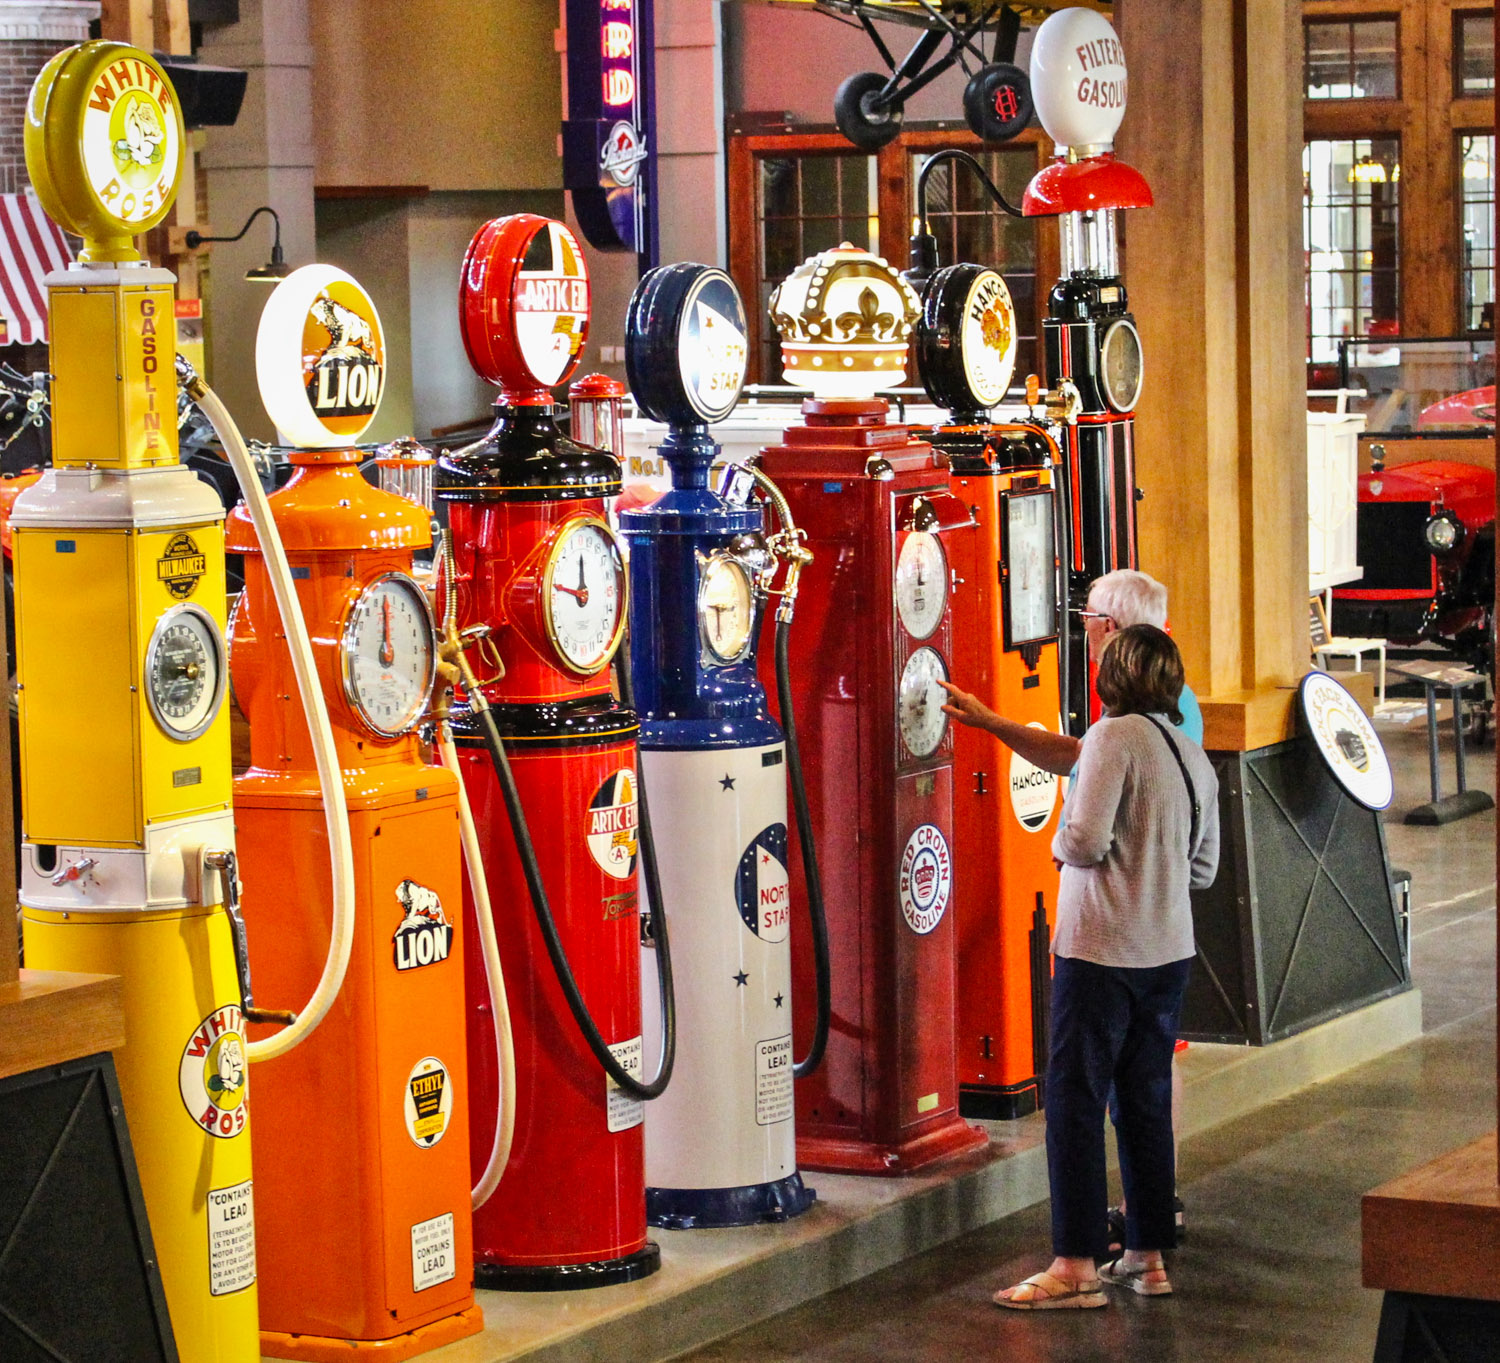 Gasoline Alley gas pumps vintage